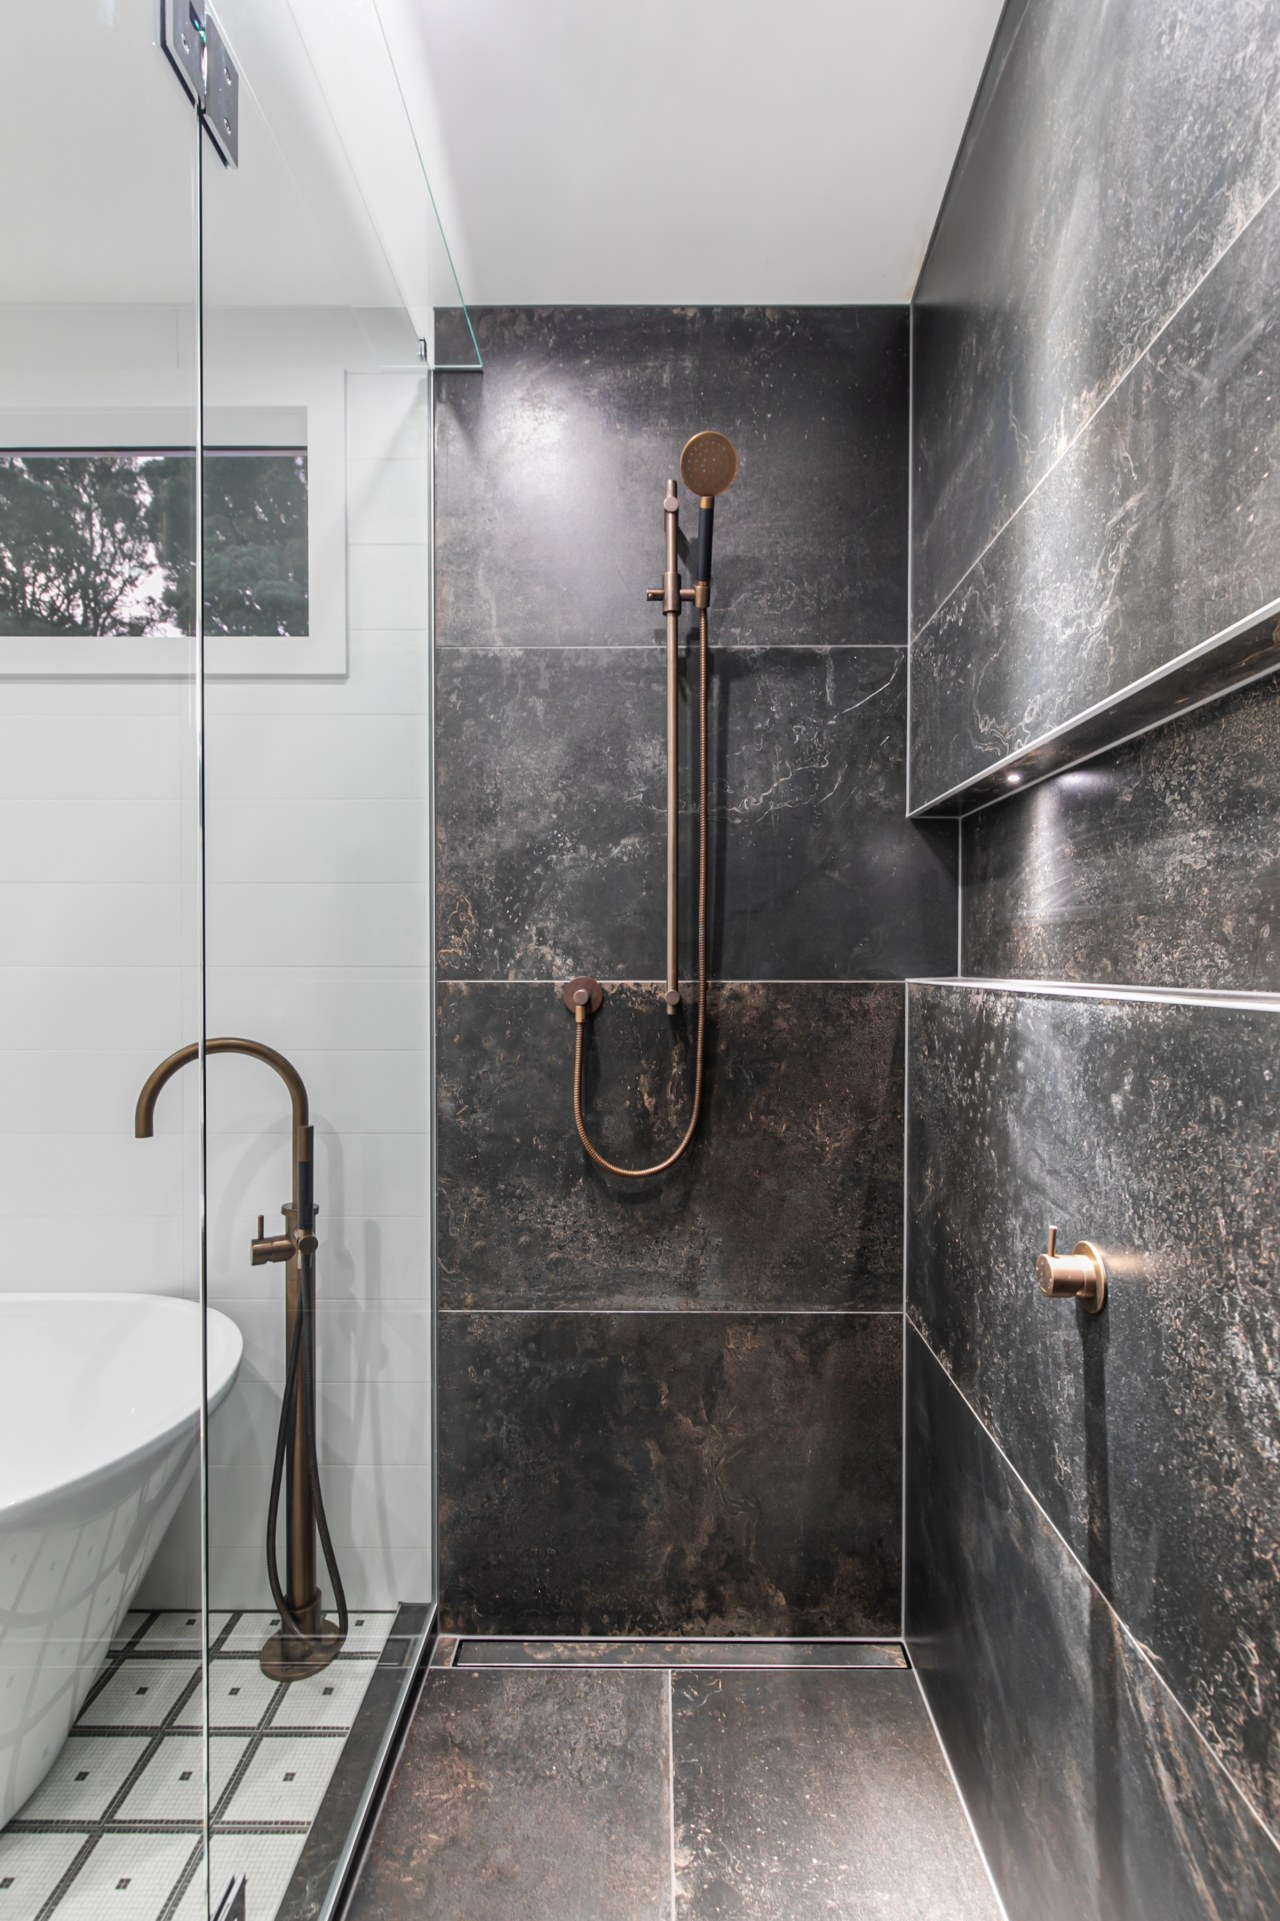 The shower stall from within – tall, dark,